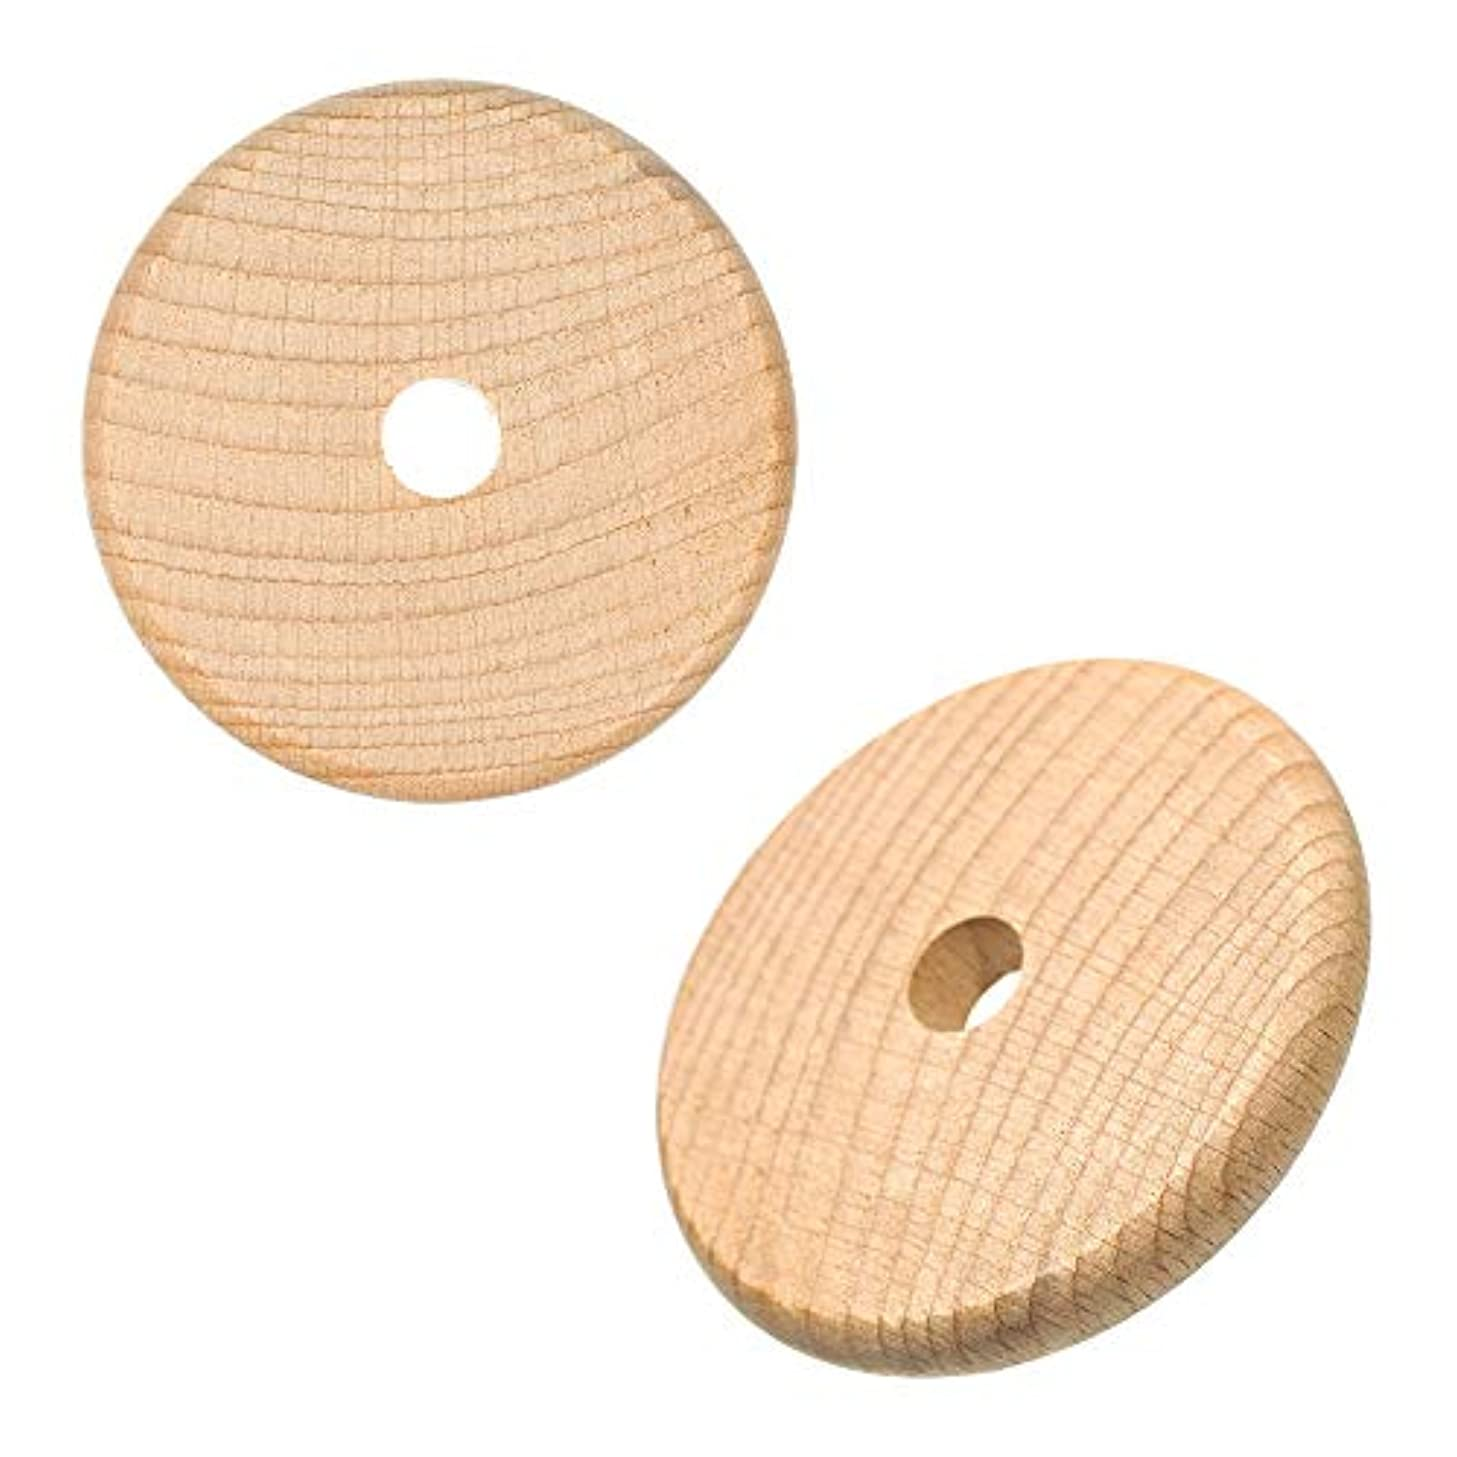 Paracord Planet Wood Disc Bead (Natural) – 3 Inches – 5, 10, 25, 50, and 100 Packs – Jewelry Tags DIY